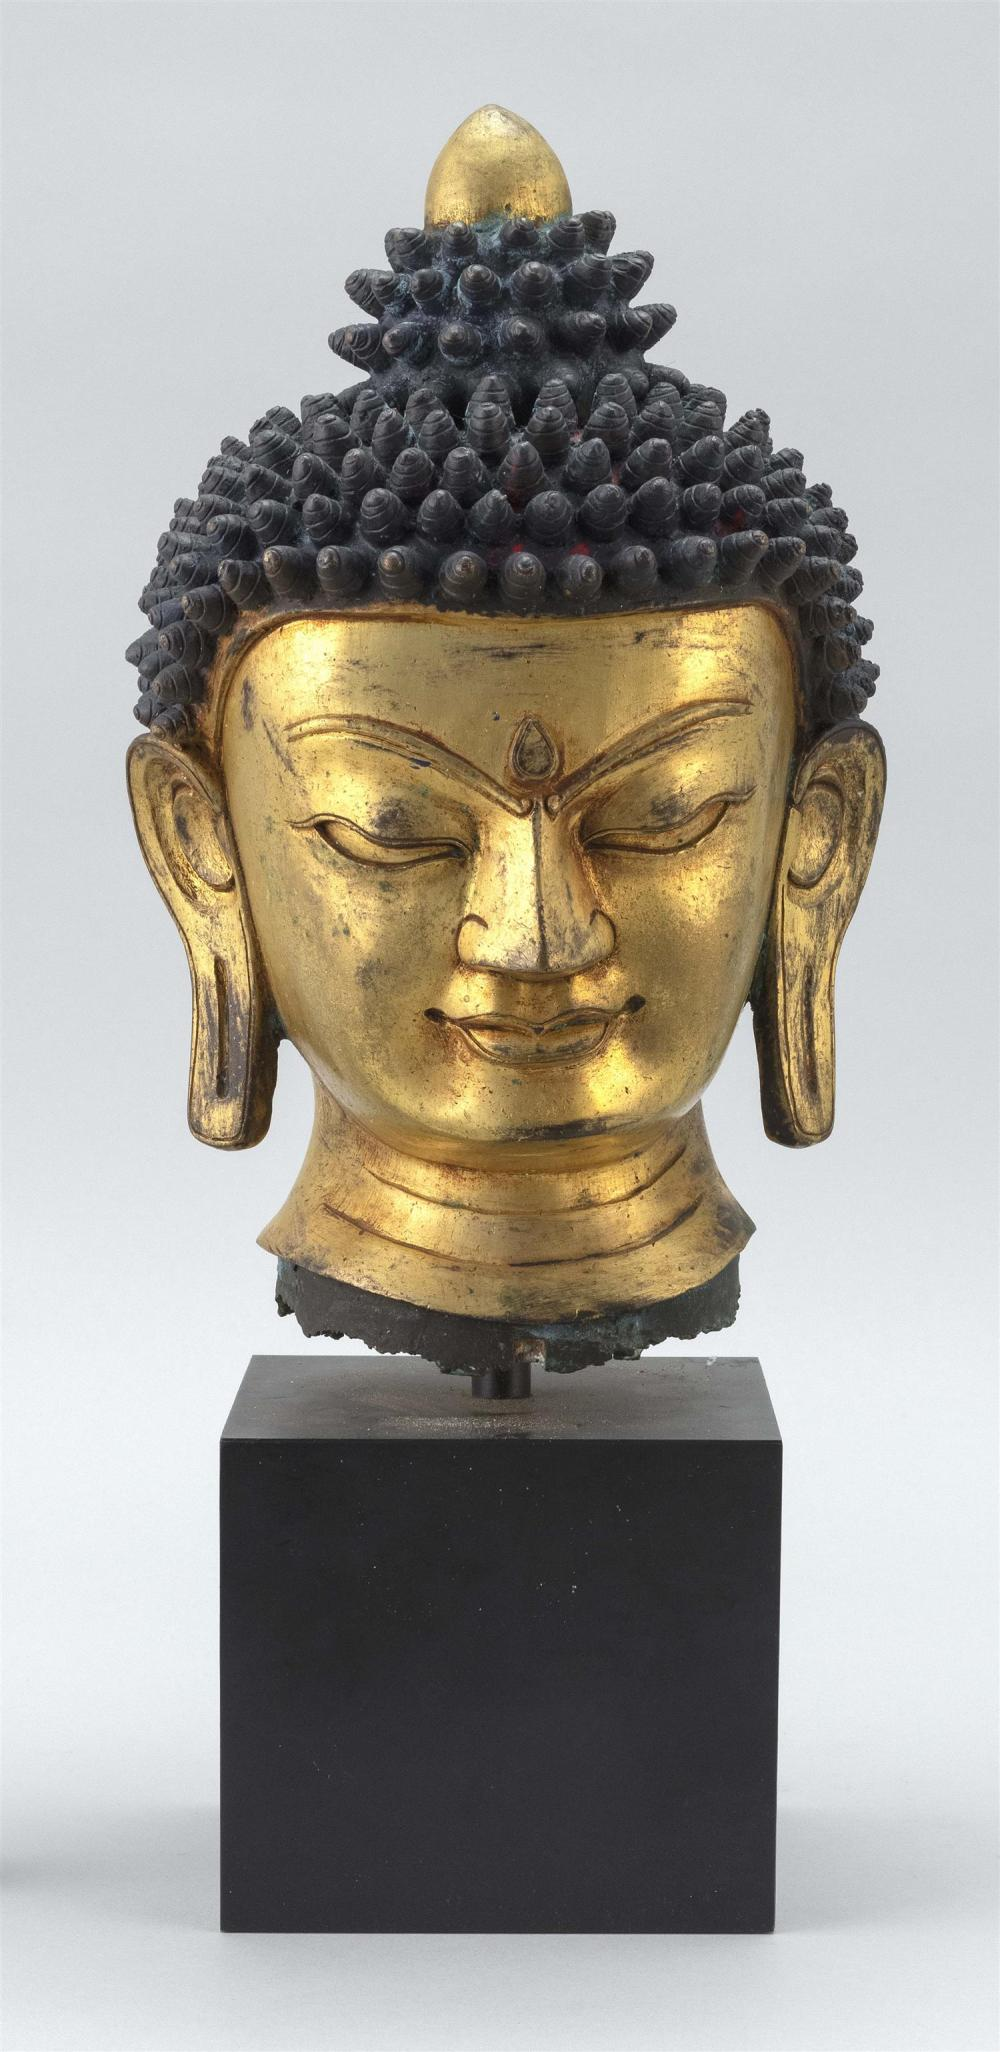 "GILT-BRONZE HEAD OF BUDDHA With tightly curled top knots. Shaded in blue. Height 9.25""."